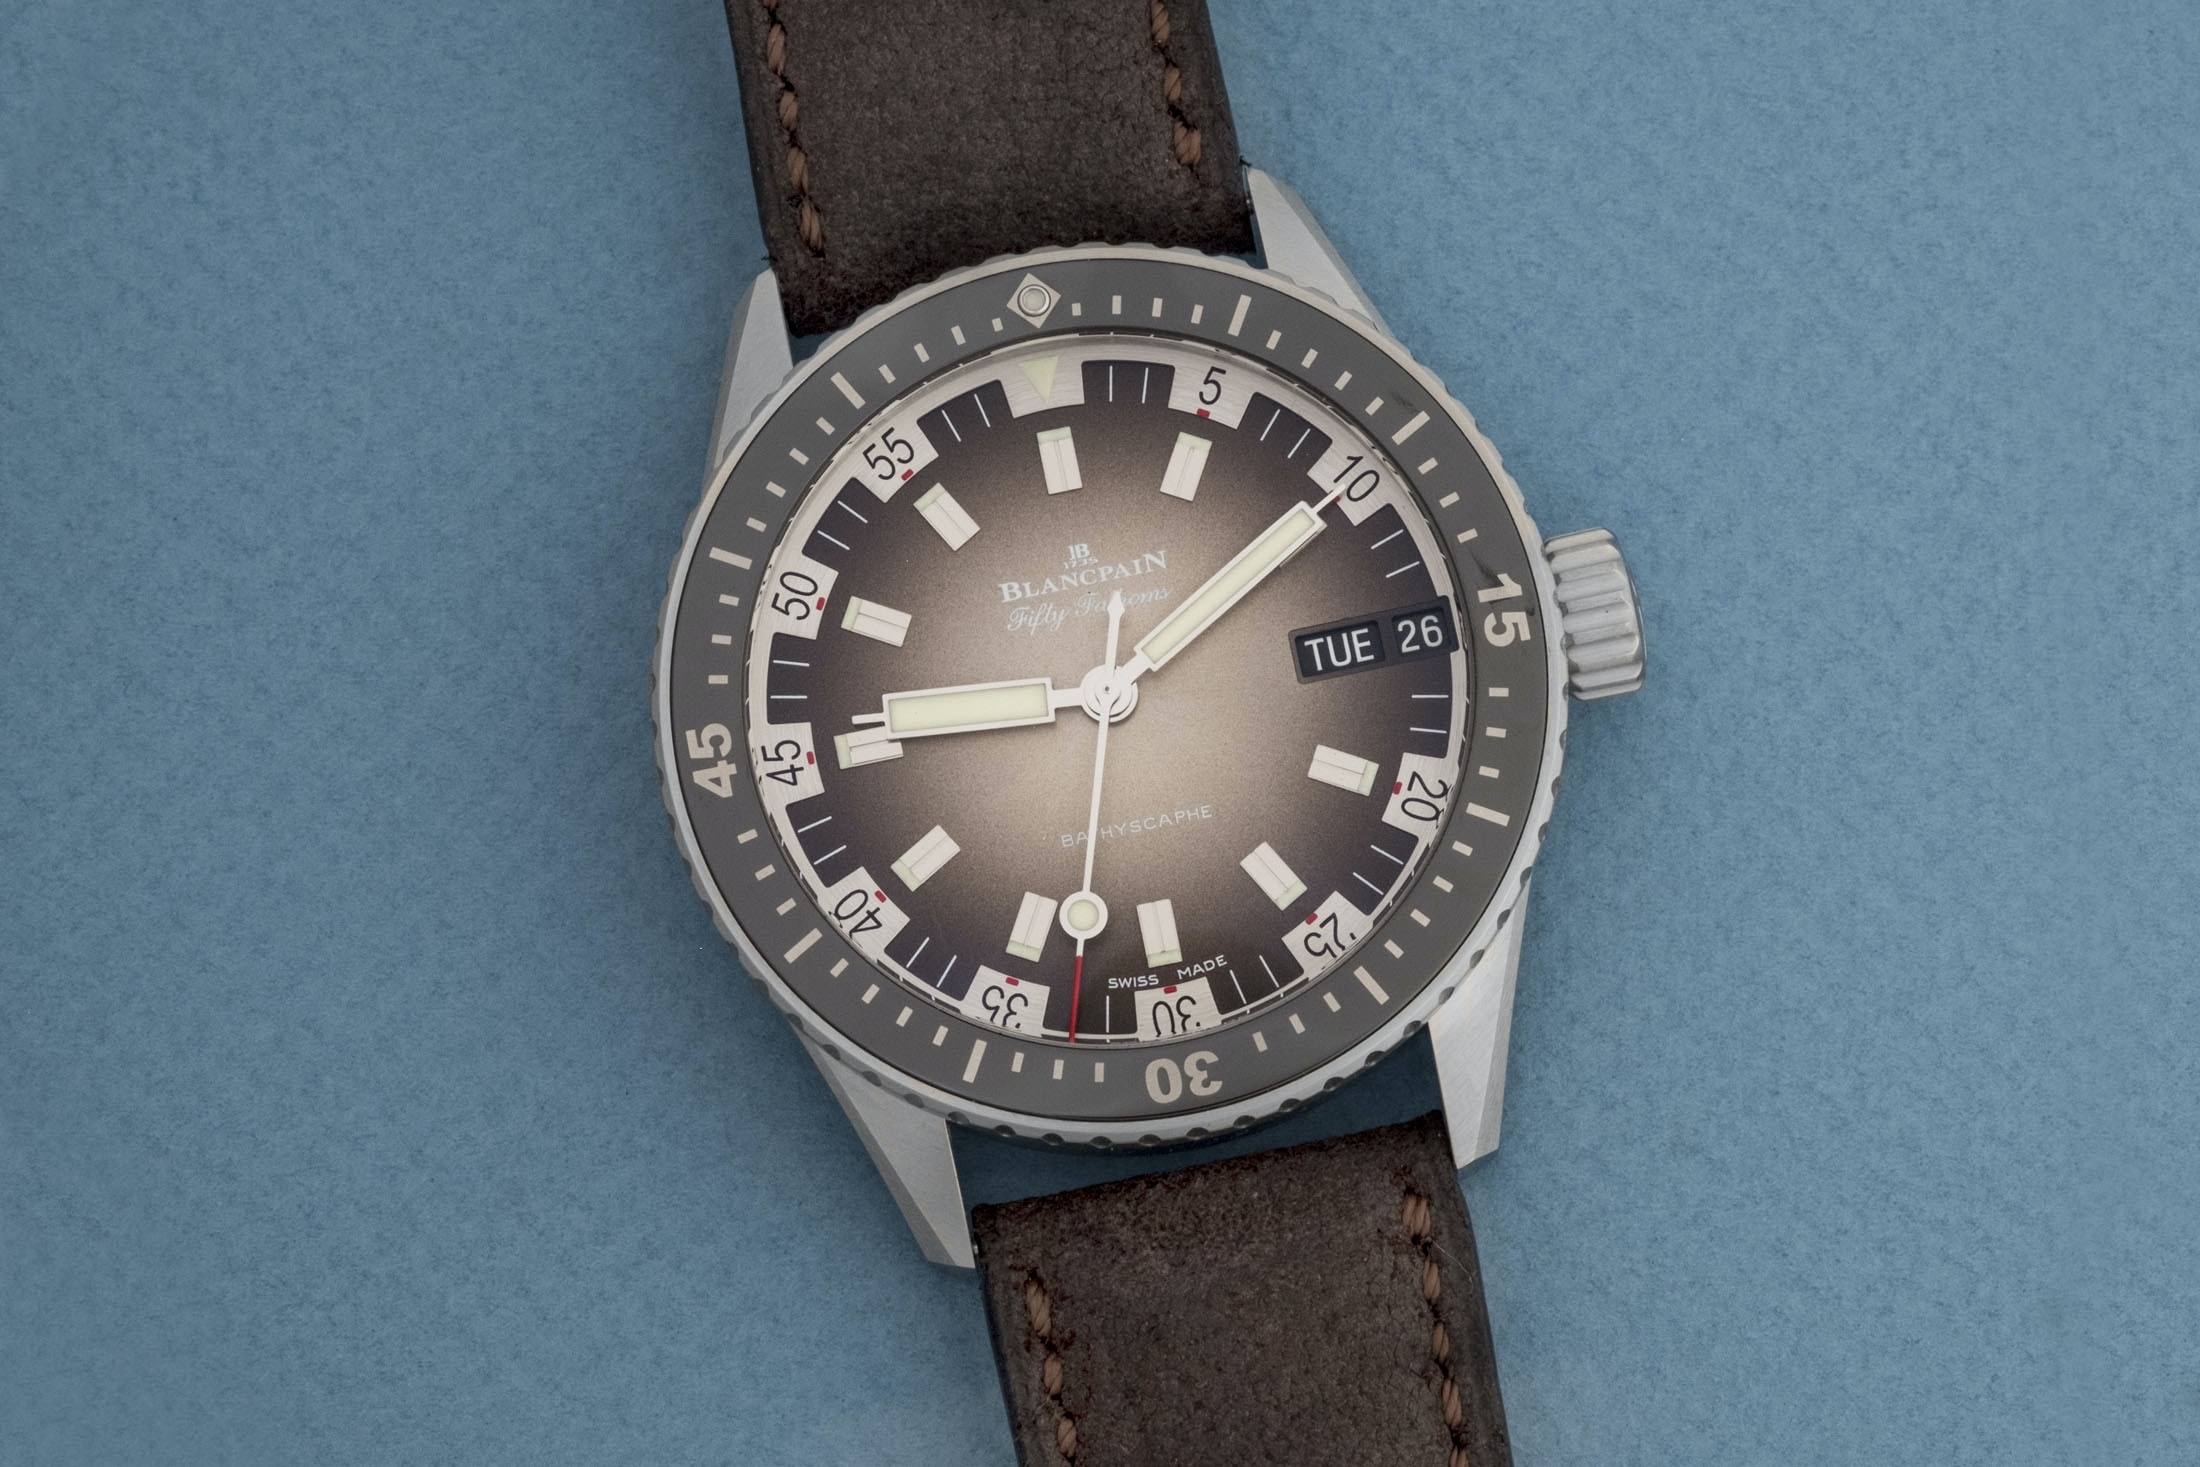 Review: The Blancpain Fifty Fathoms Bathyscaphe Day Date 70s DSCF8653